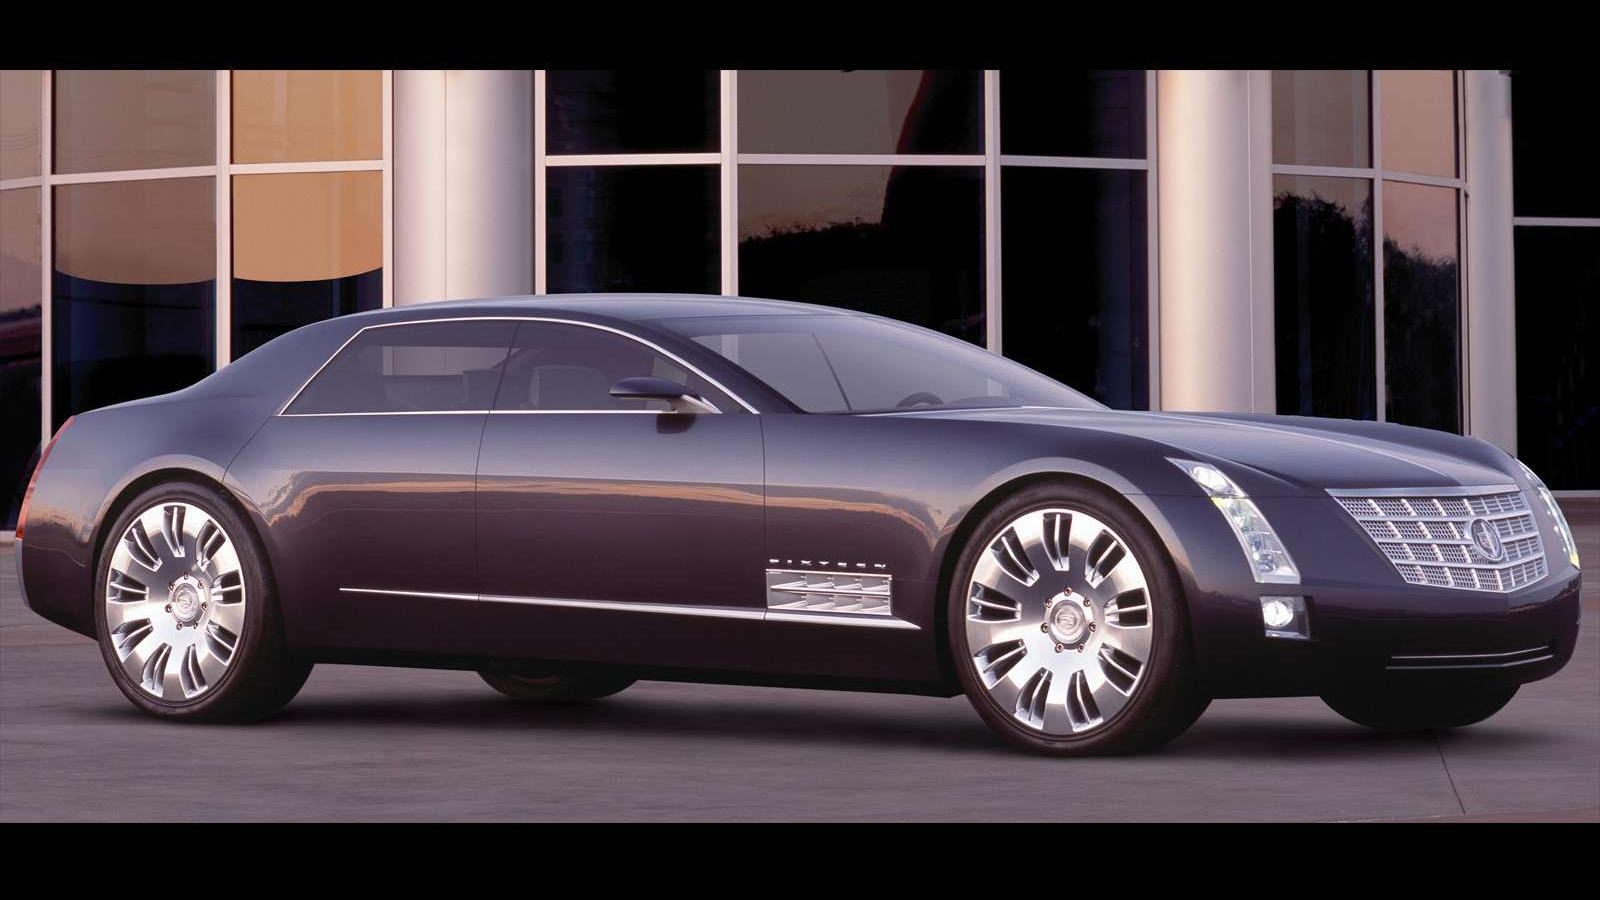 2017 Cadillac Sixteen Concept | Car Photos Catalog 2018